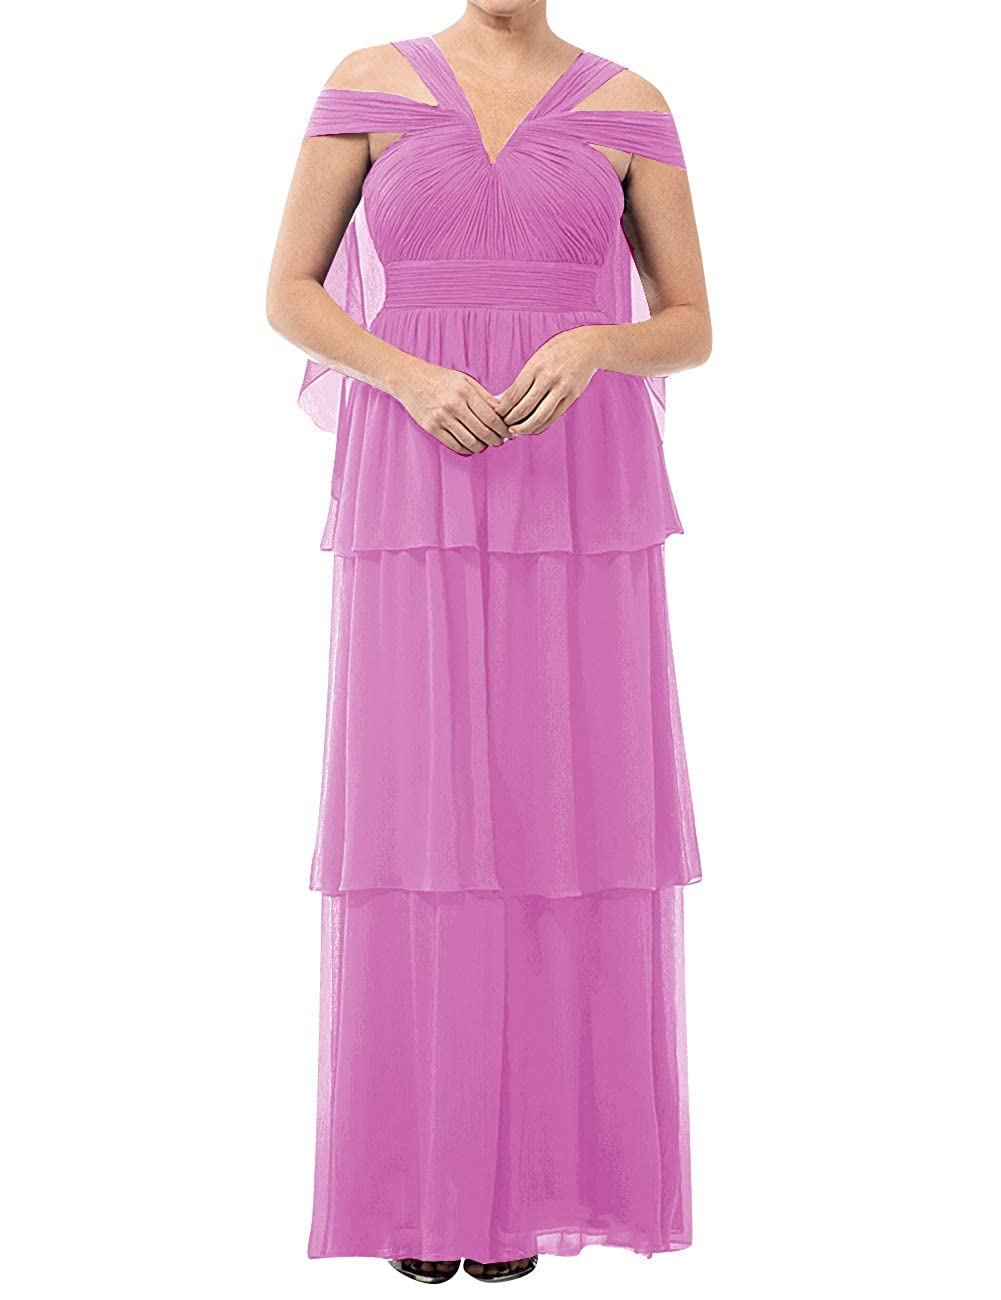 purplec Mother of The Bride Dresses VNeck Long Mother of Groom Dress Plus Size Evening Gowns